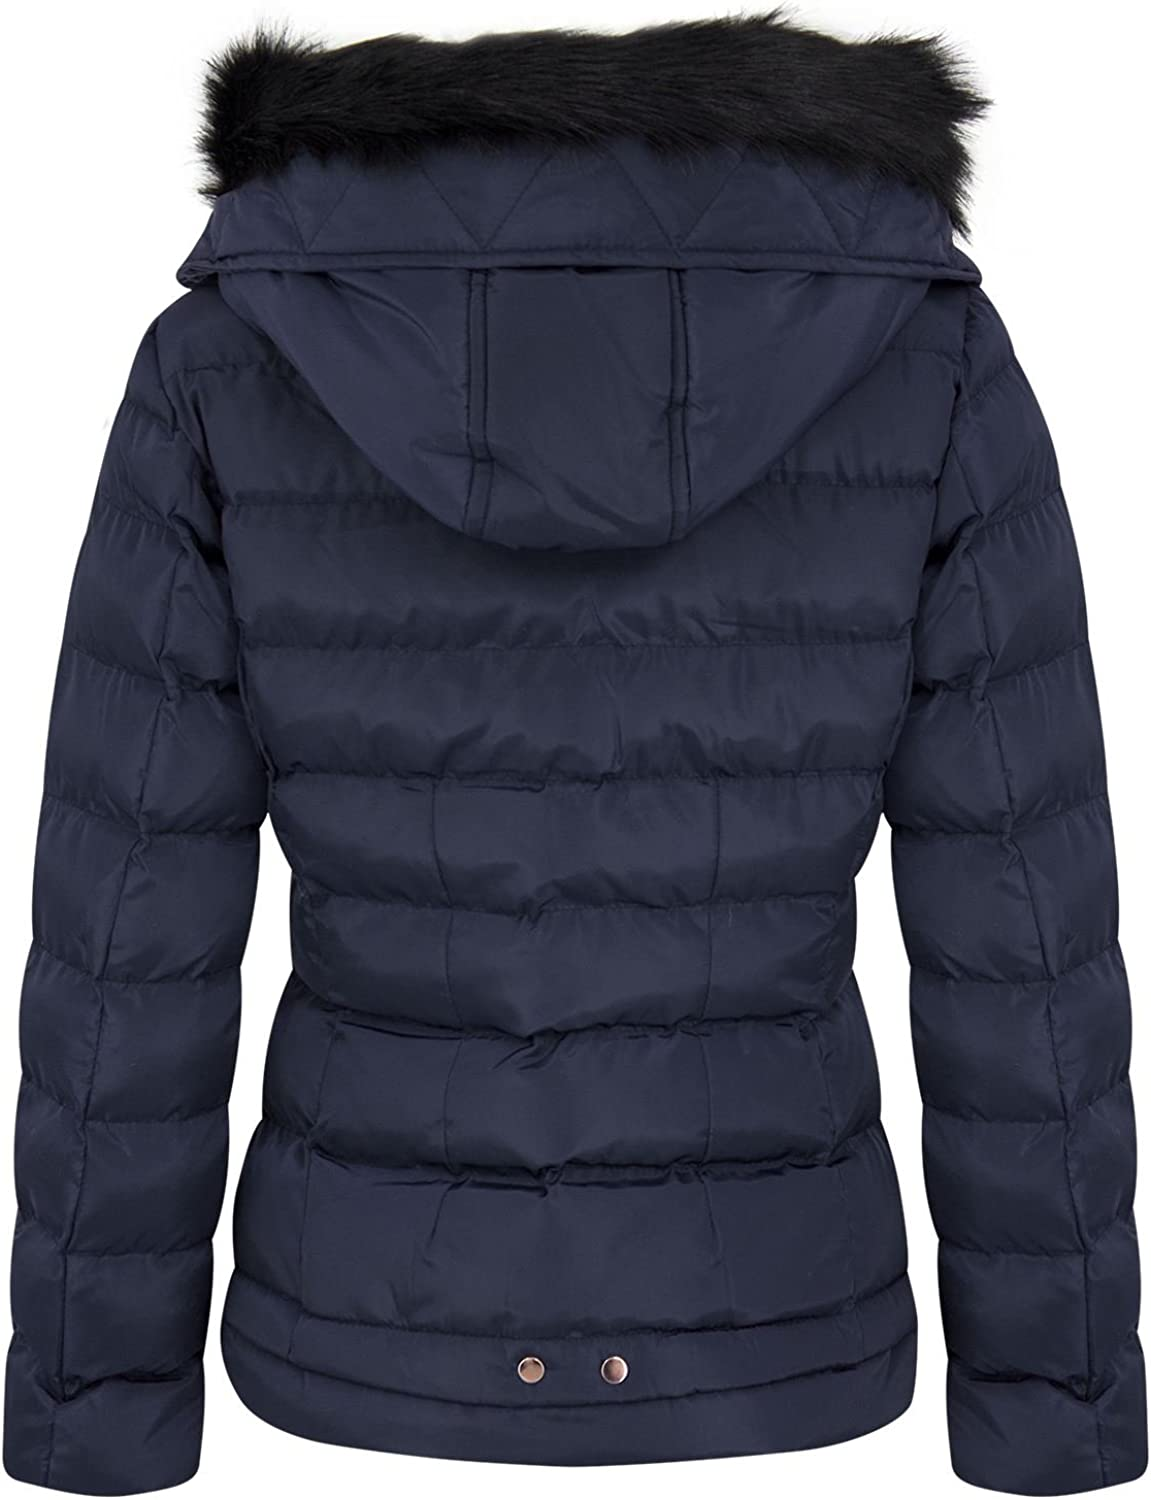 10 /& 14 Ladies Winter Padded Quilted Navy Blue Zip Up Jacket Coat New Sizes 8